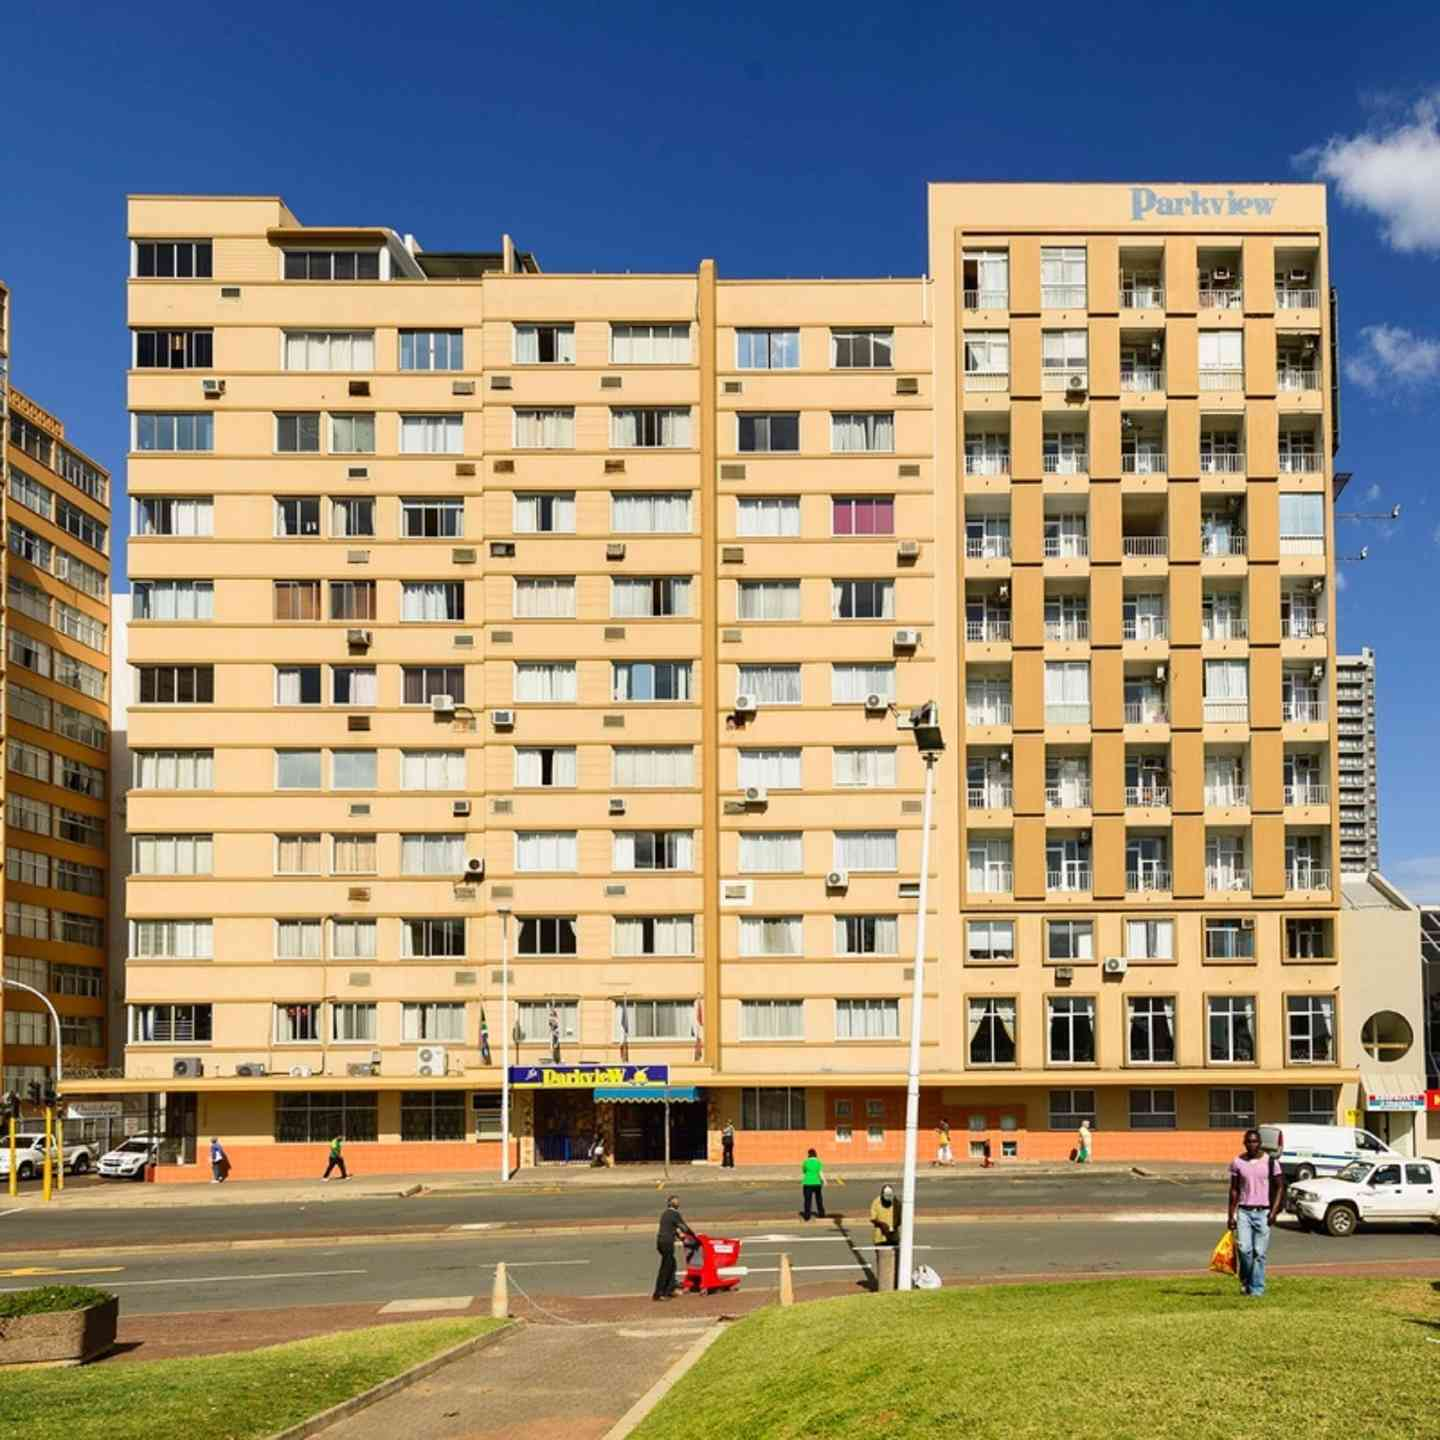 Parkview holiday apartments durban south africa for The parkview